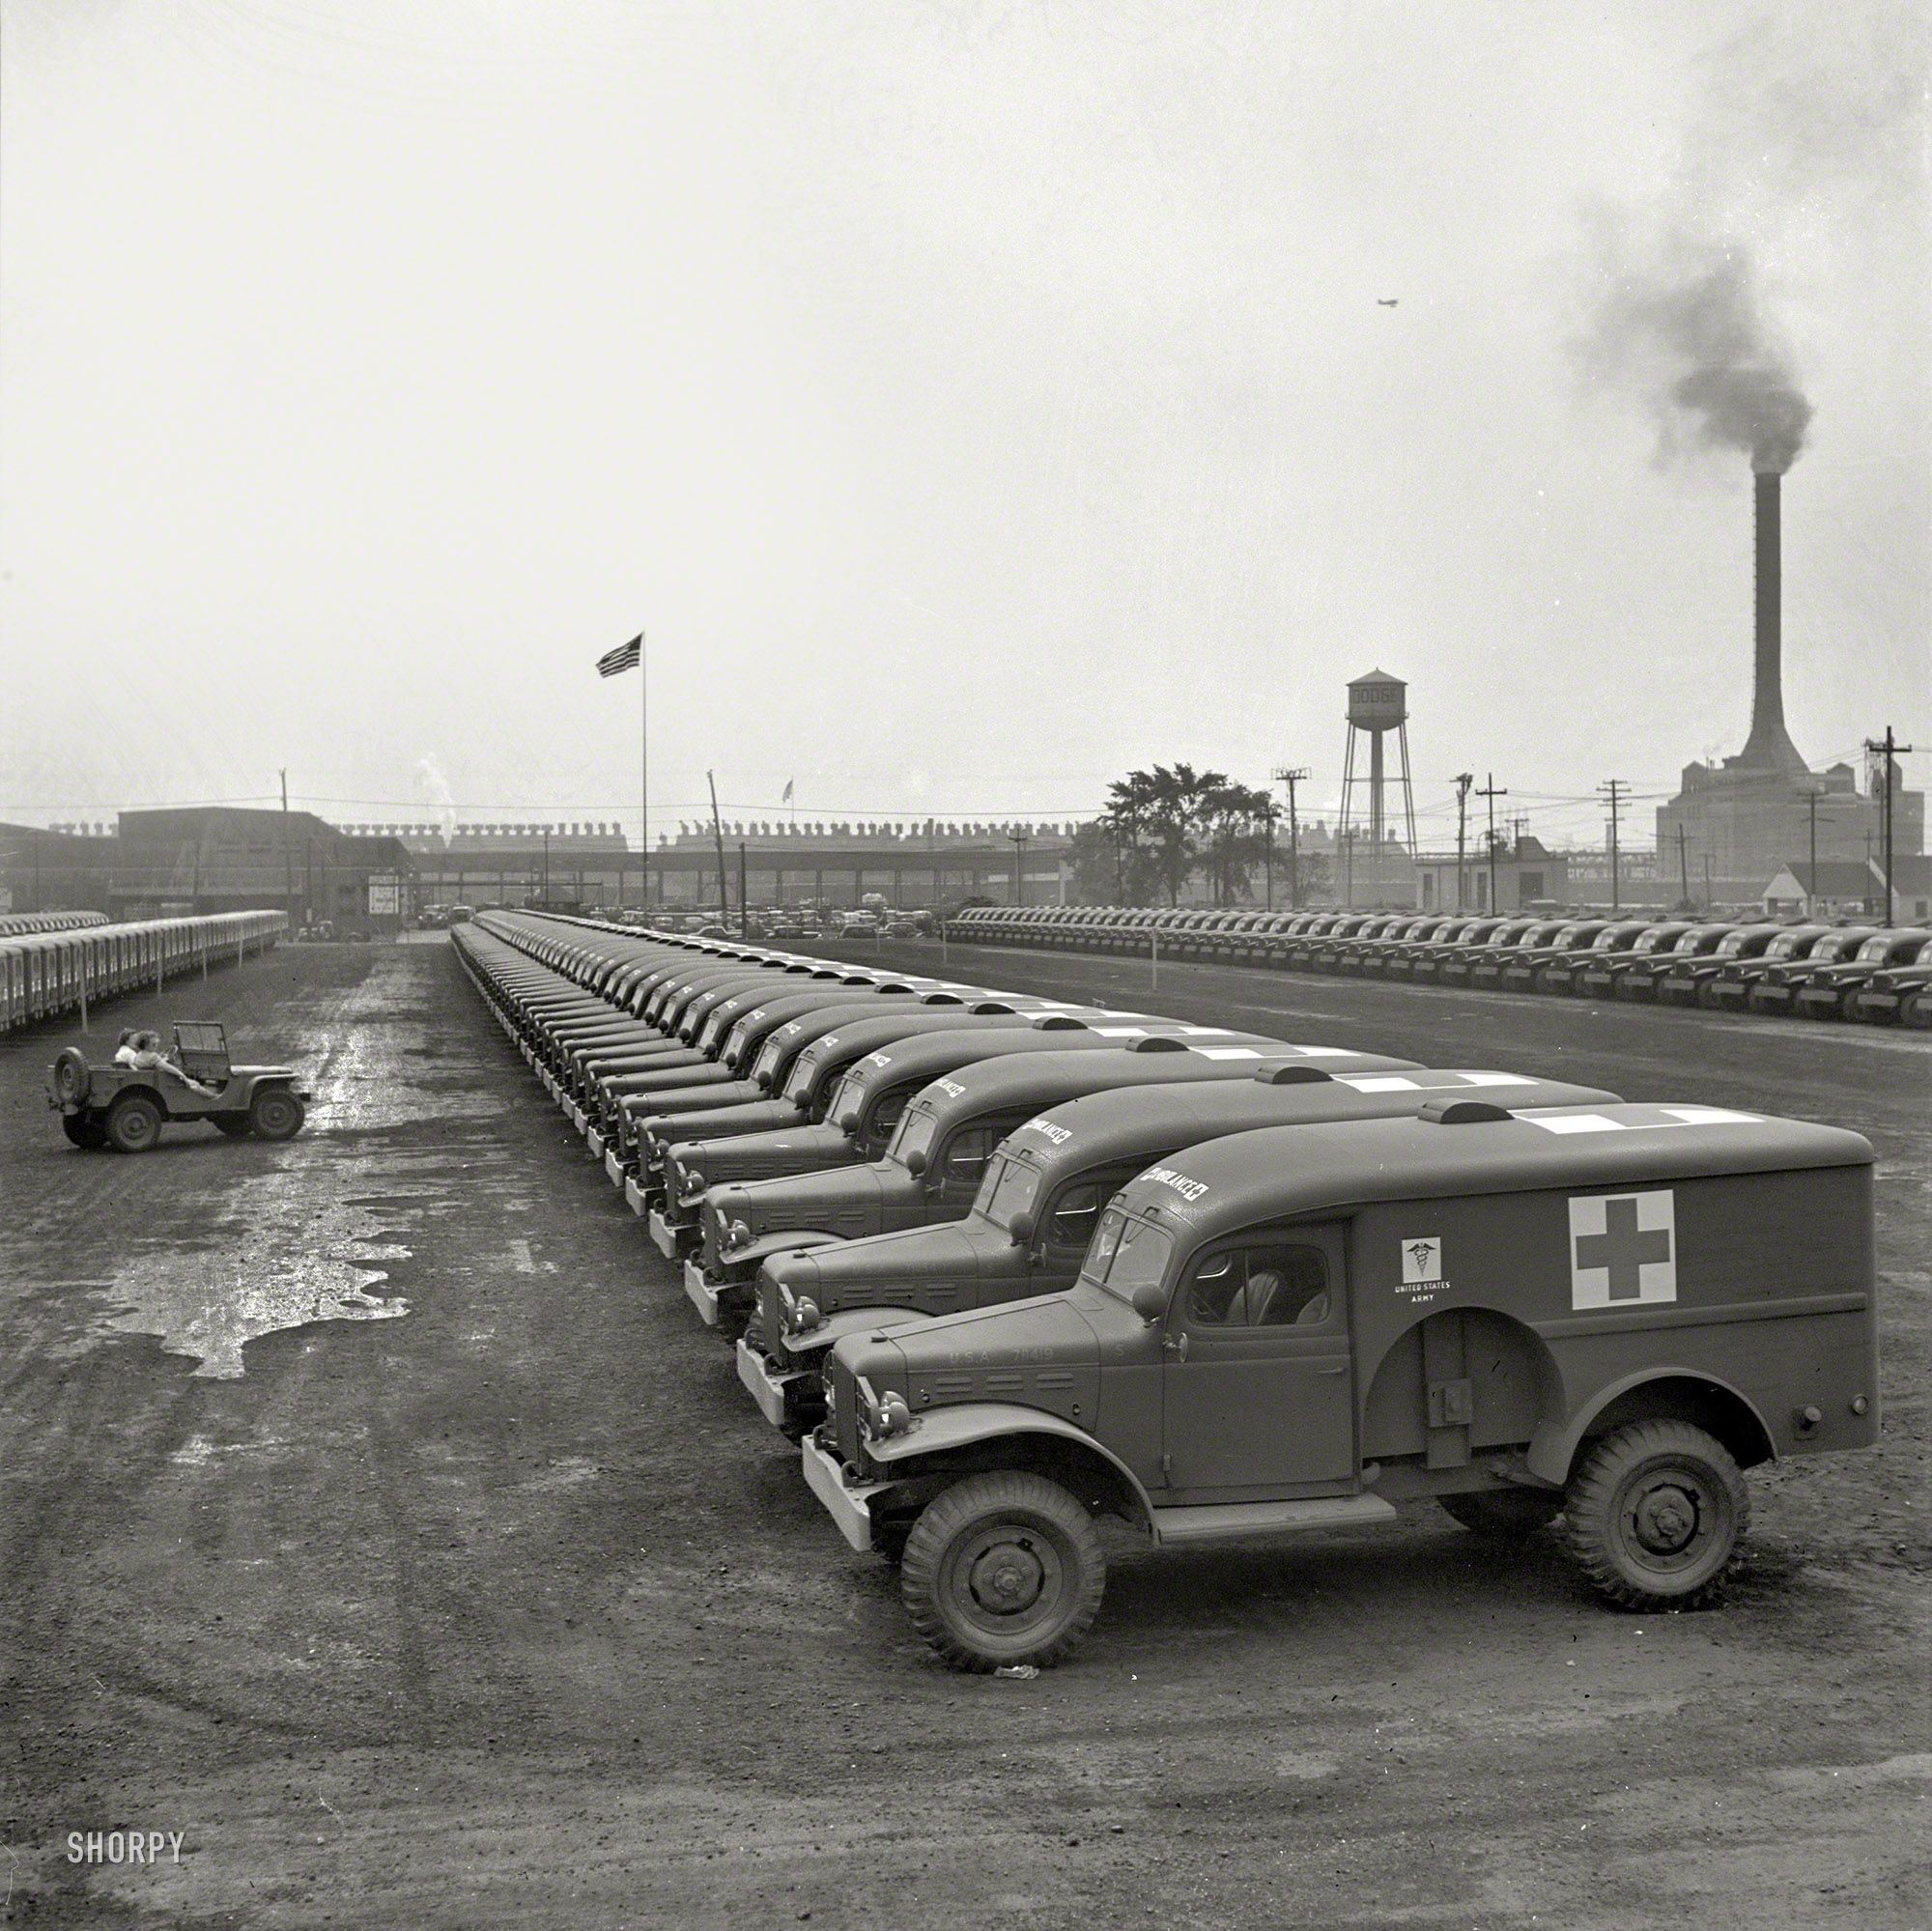 August 1942 Detroit Michigan Chrysler Corporation Dodge Truck Plant Dodge Ambulances Are Here Lined Up For Delivery To Met Afbeeldingen Militaire Voertuigen Militair Leger